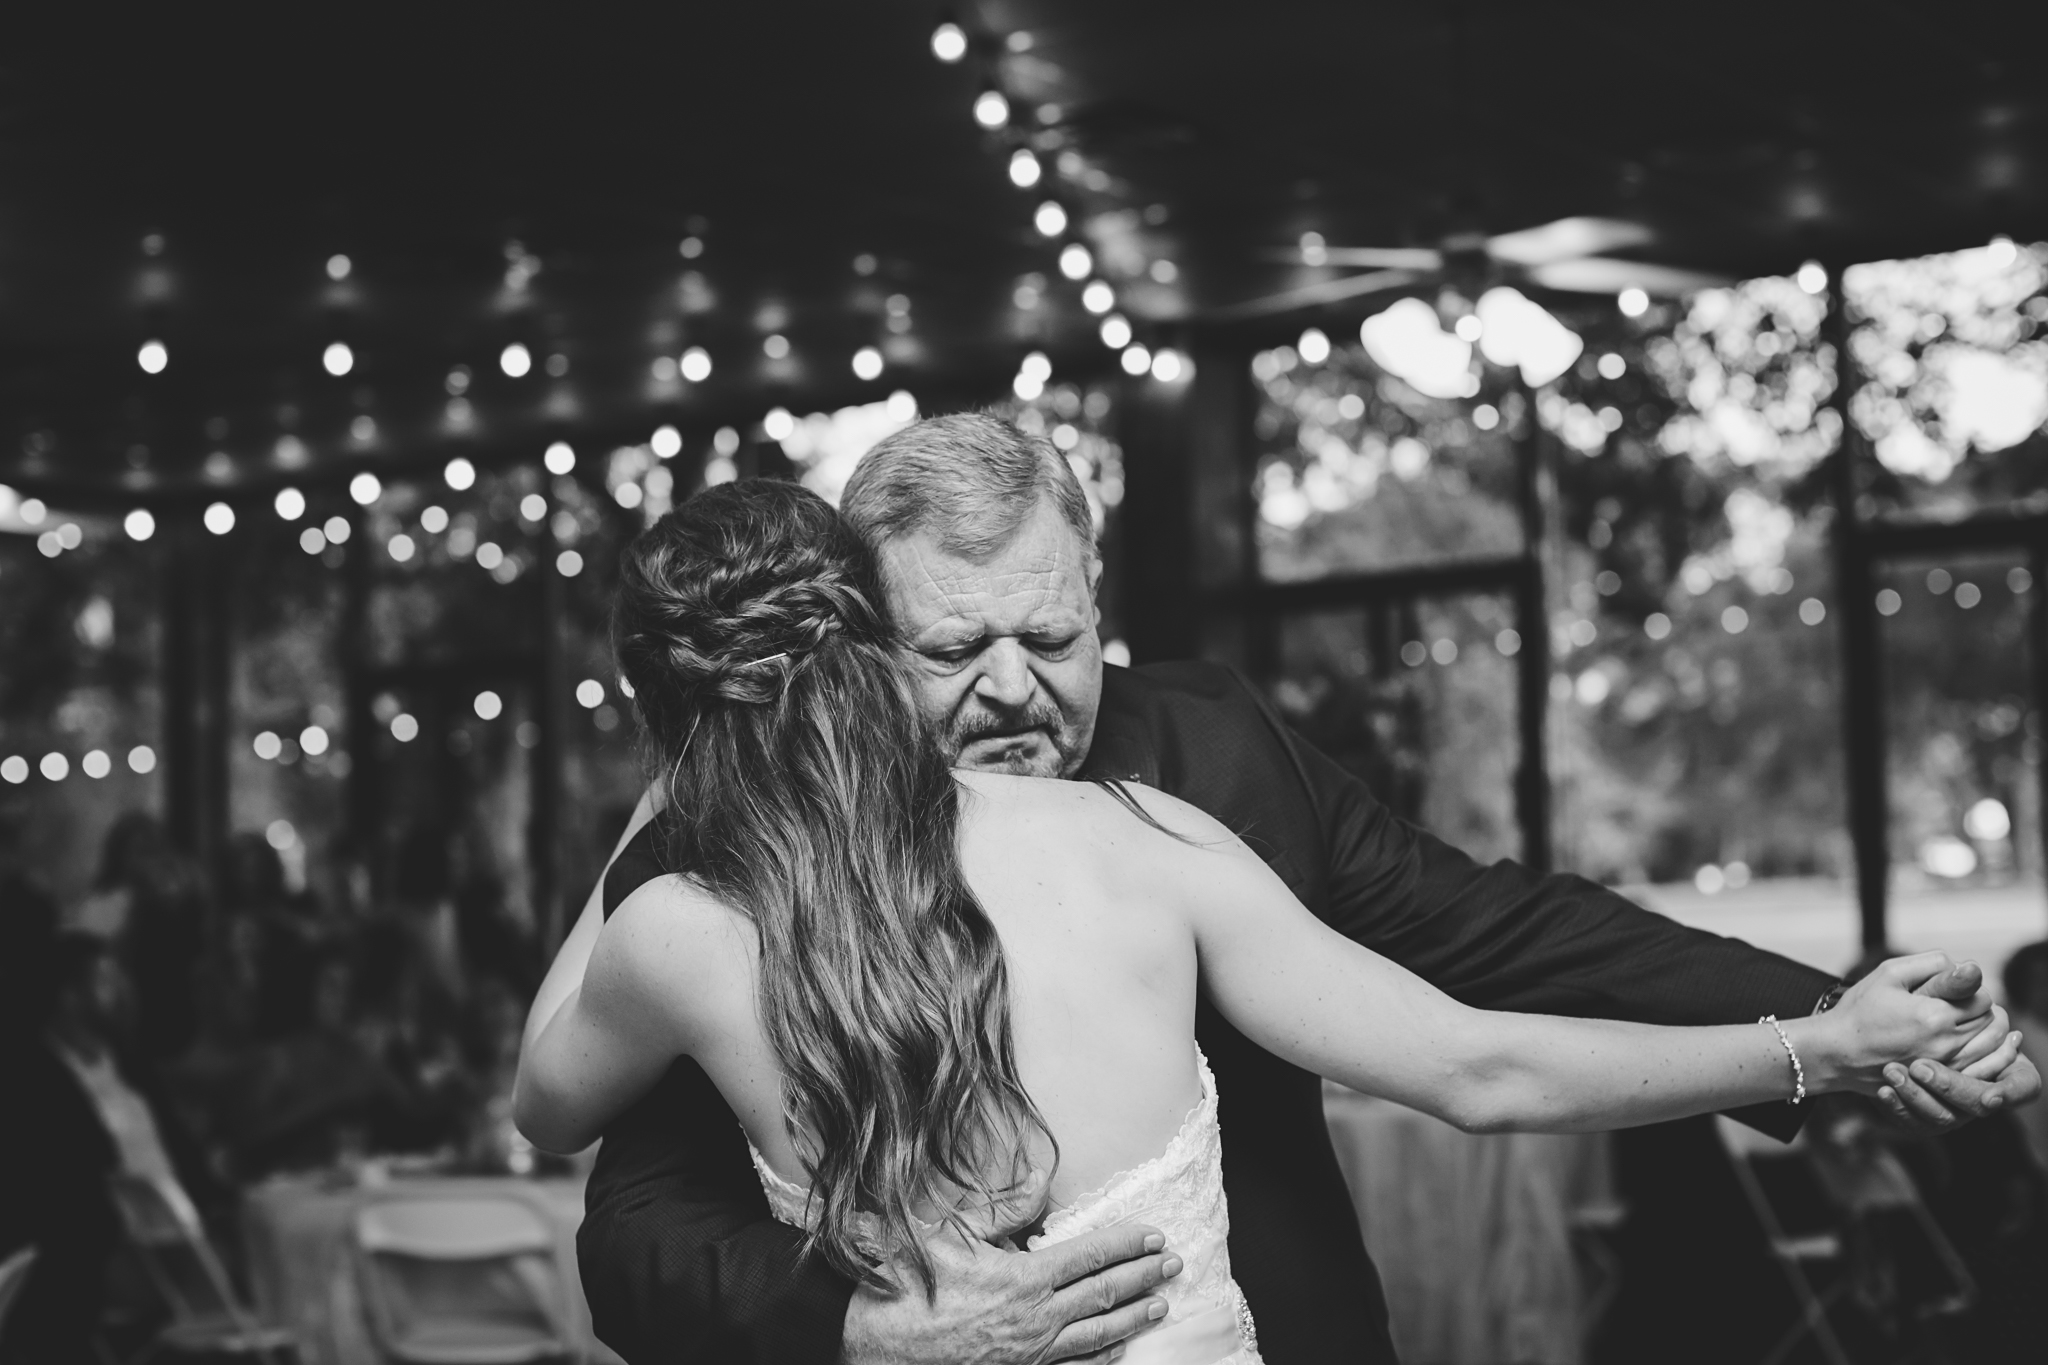 He's letting go of his daughter while holding on so tight.